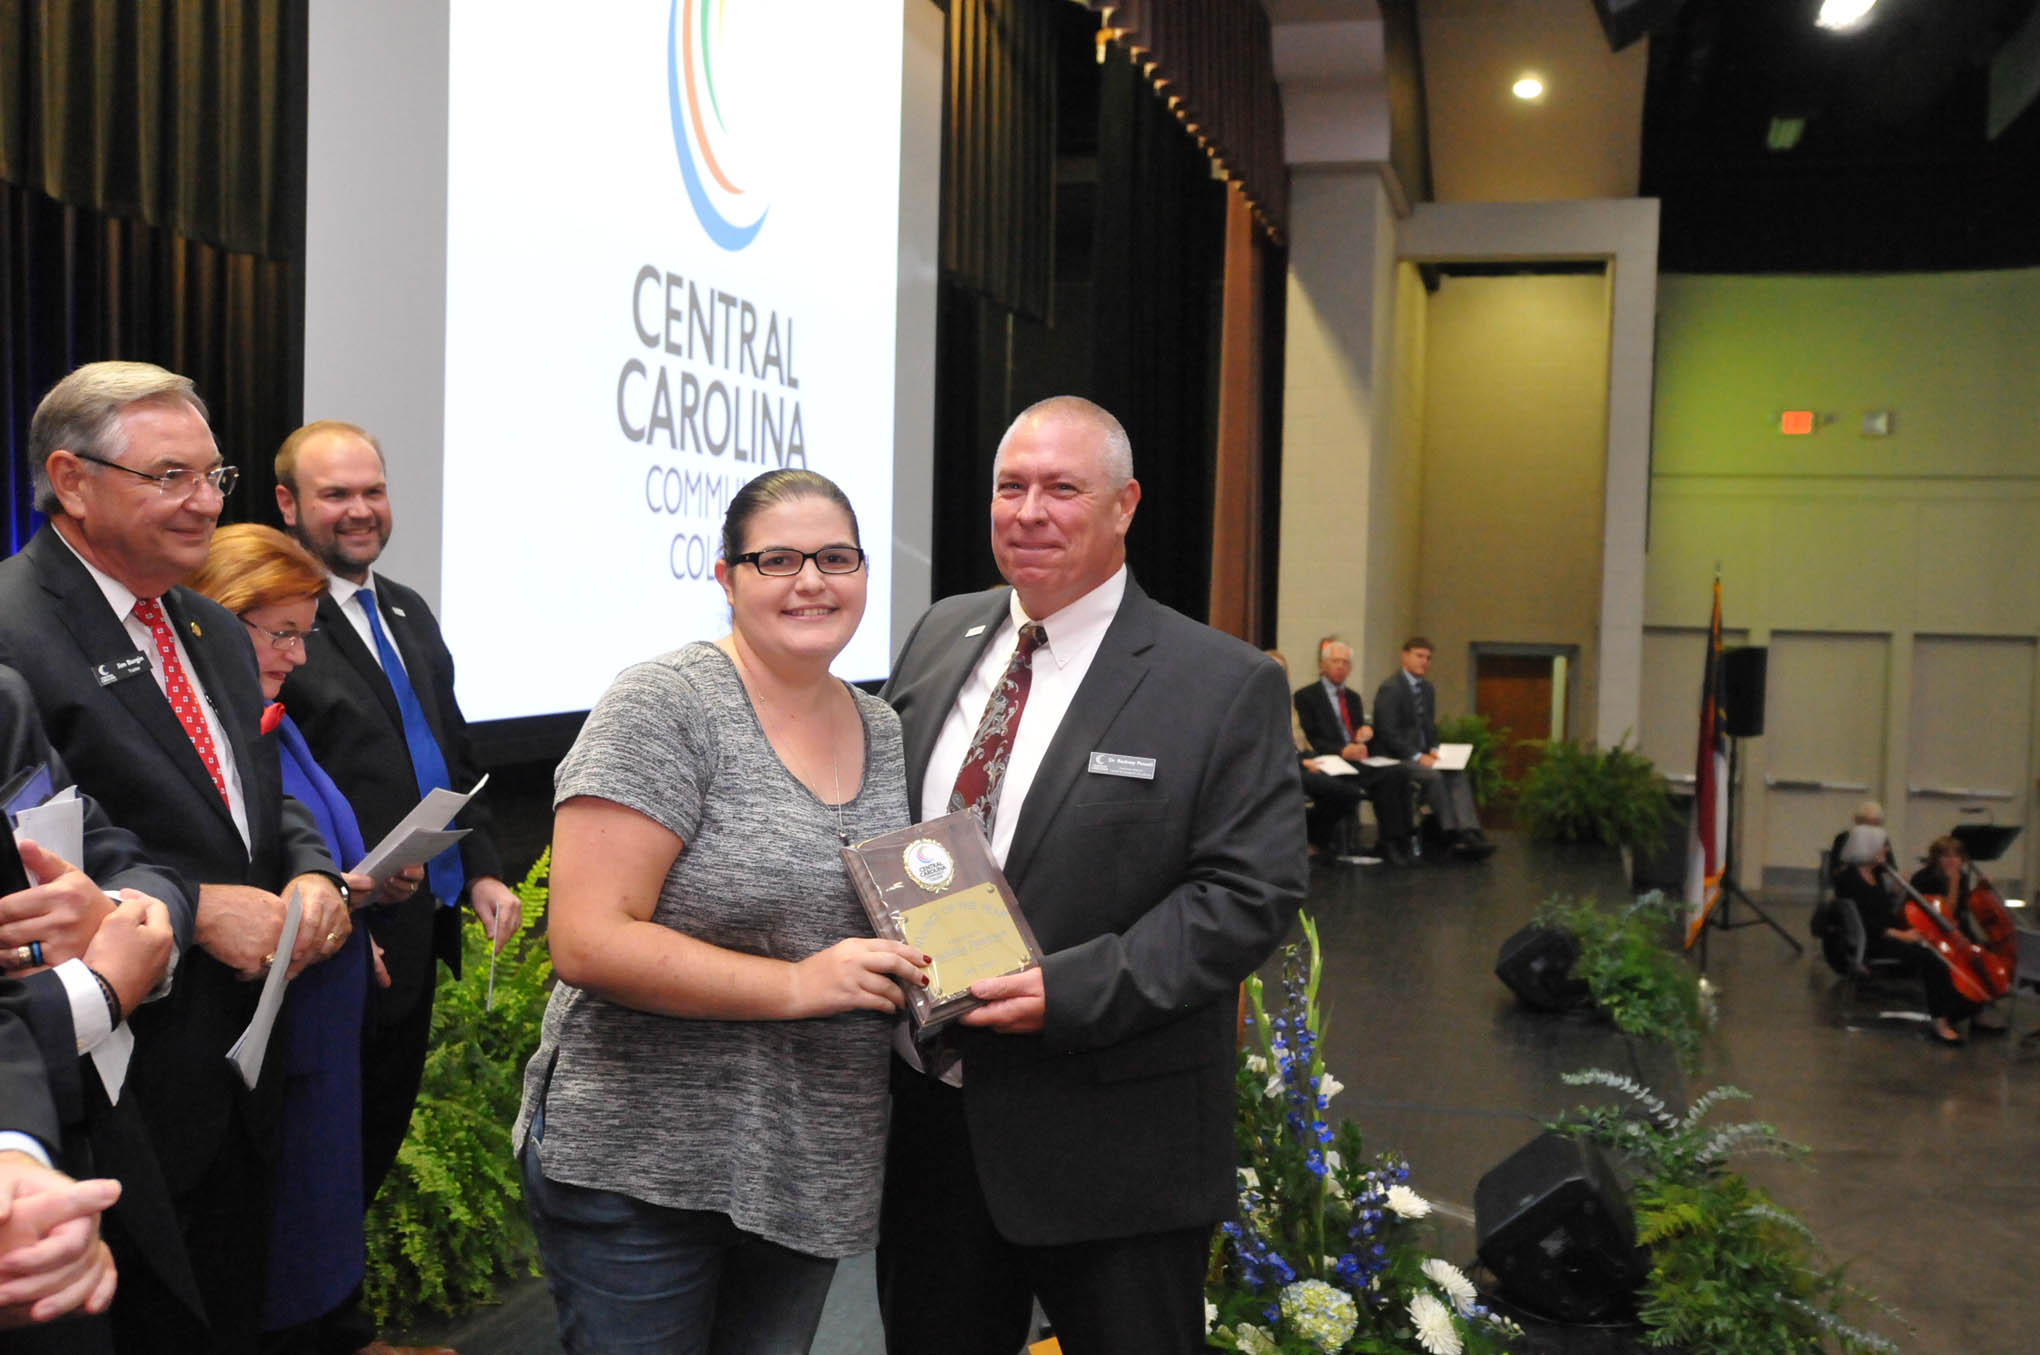 Click to enlarge,  Michelle Patterson (left), a Central Carolina Community College Veterinary Medical Technology Instructor, receives the Adjunct of the Year award from Dr. Rodney Powell (right), CCCC Executive Director of the Center for Academic Excellence, during the Convocation and Installation of Dr. Lisa M. Chapman as Sixth President of CCCC on Sept. 26.